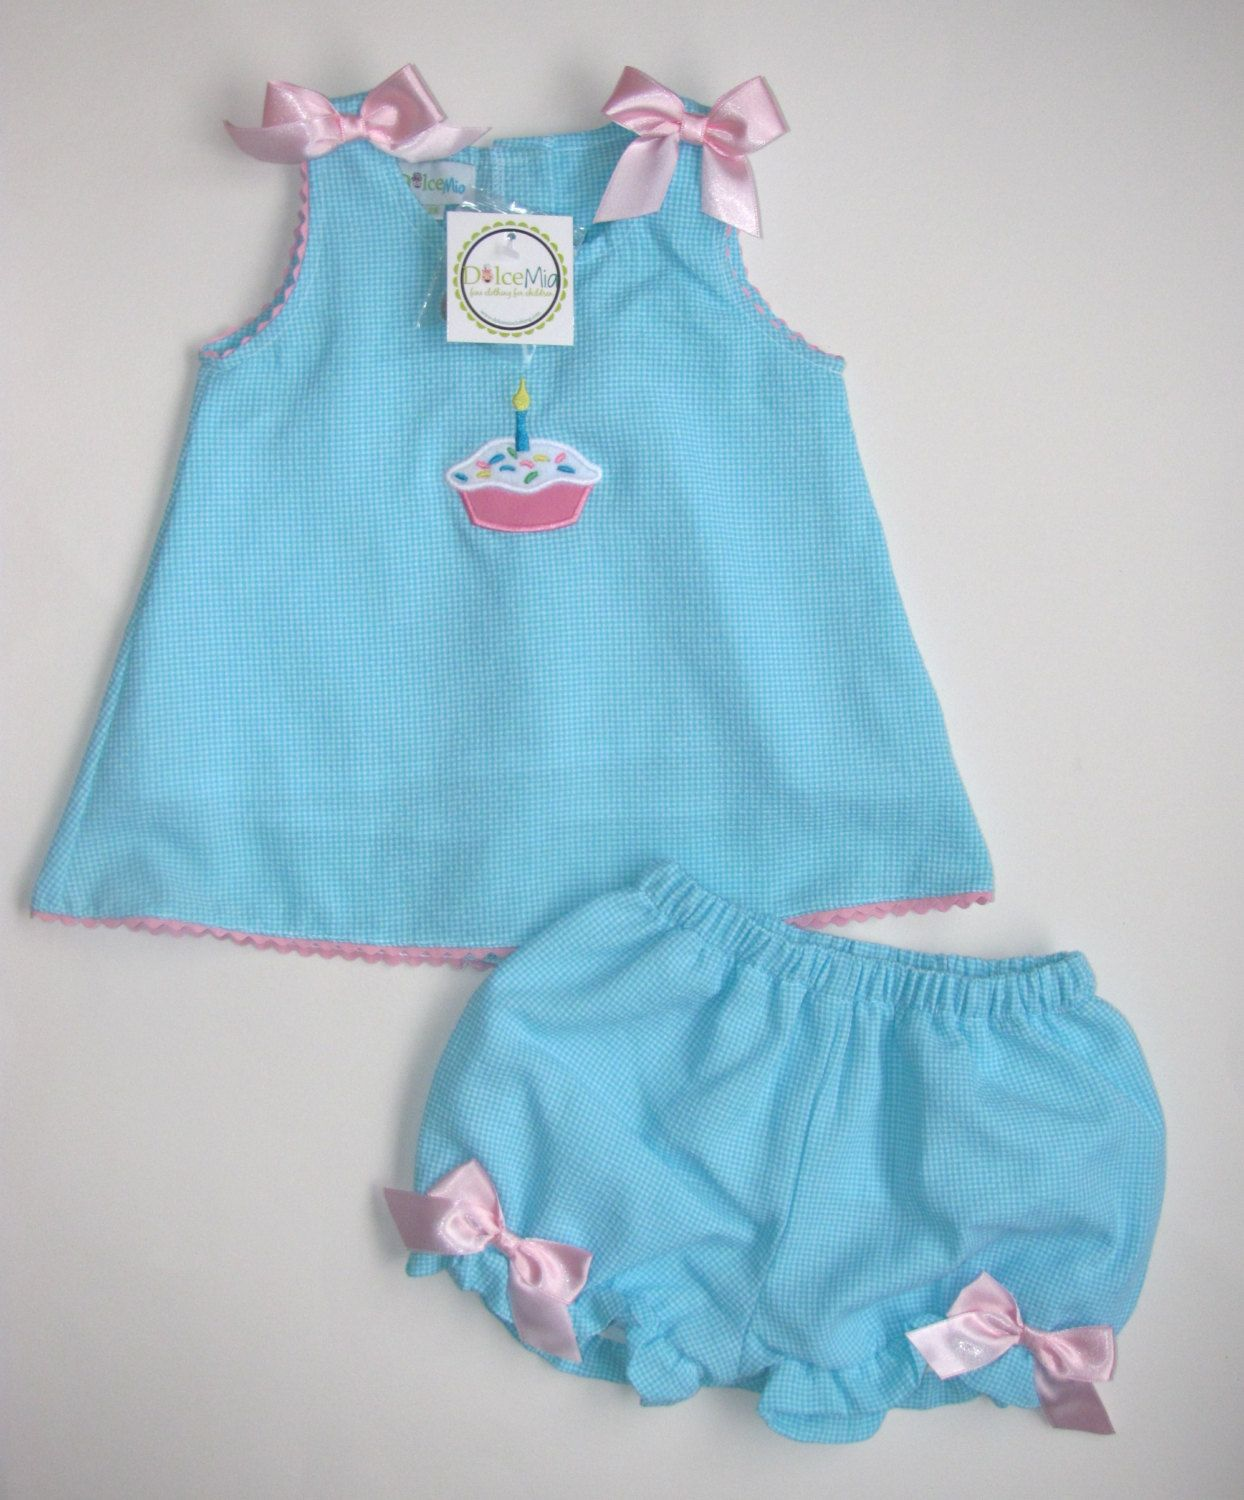 1st birthday outfit for baby girl, birthday party dress baby girl ...